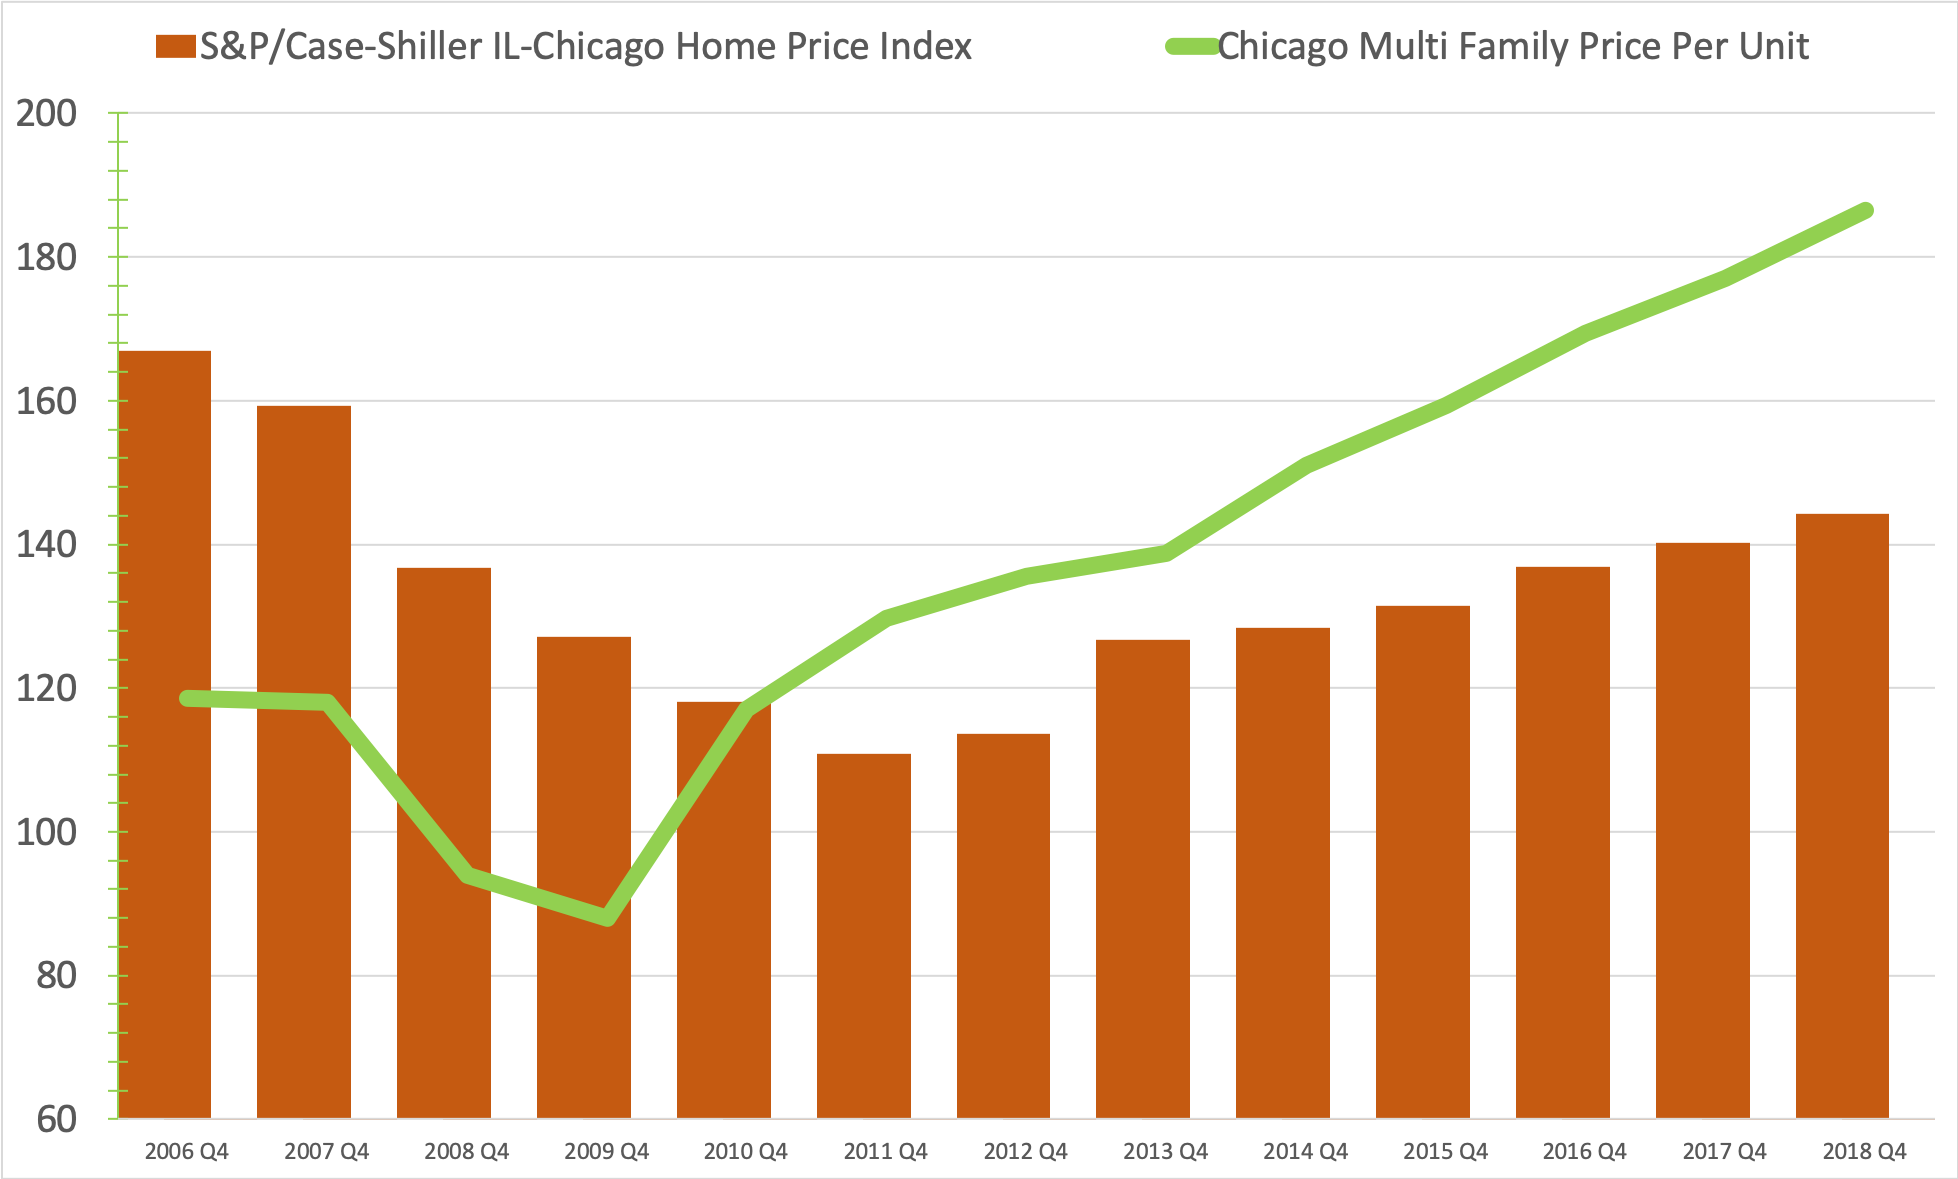 Image of S&P Case-Shiller IL-Chicago Home Price Index chart